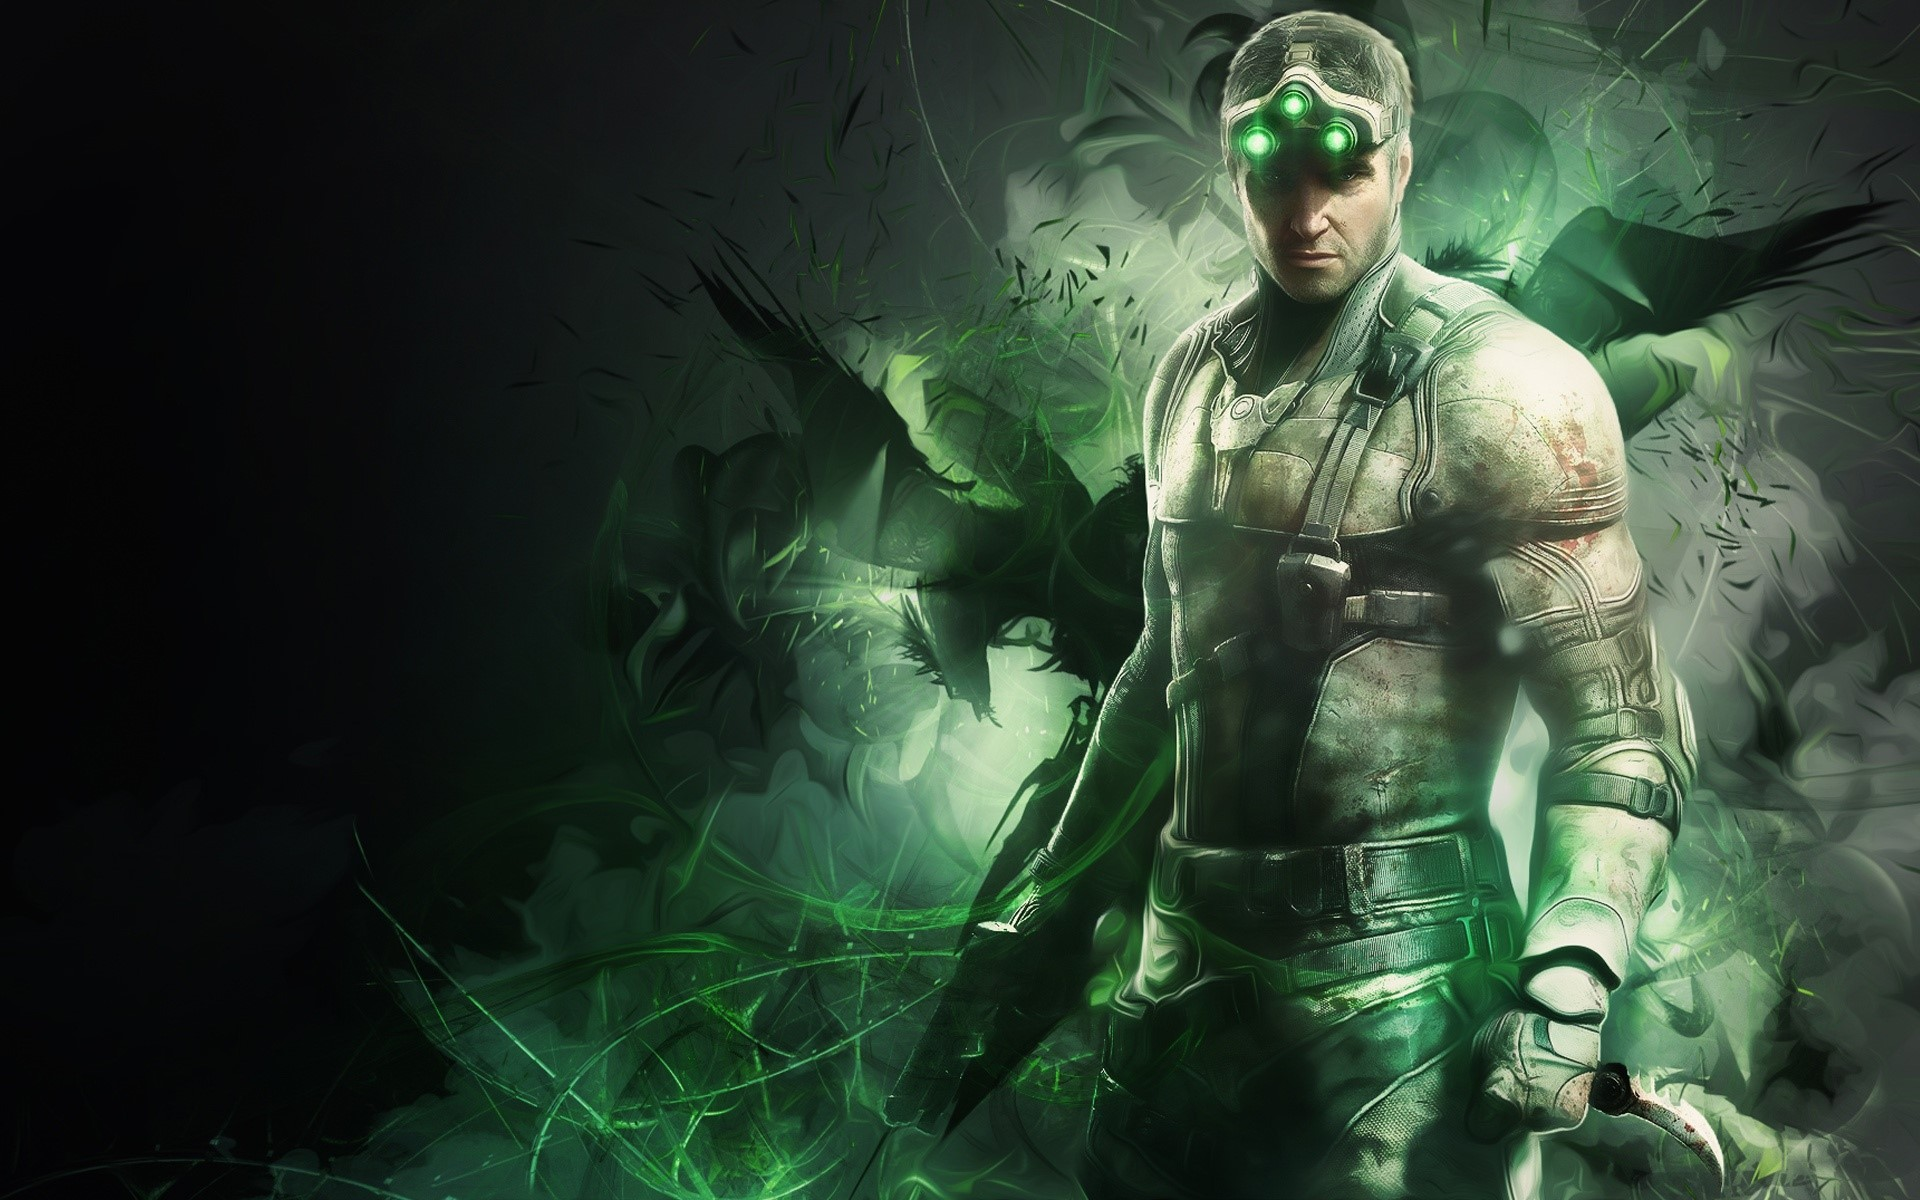 Fondo de pantalla de Tom Clancy\'s Splinter Cell Imágenes